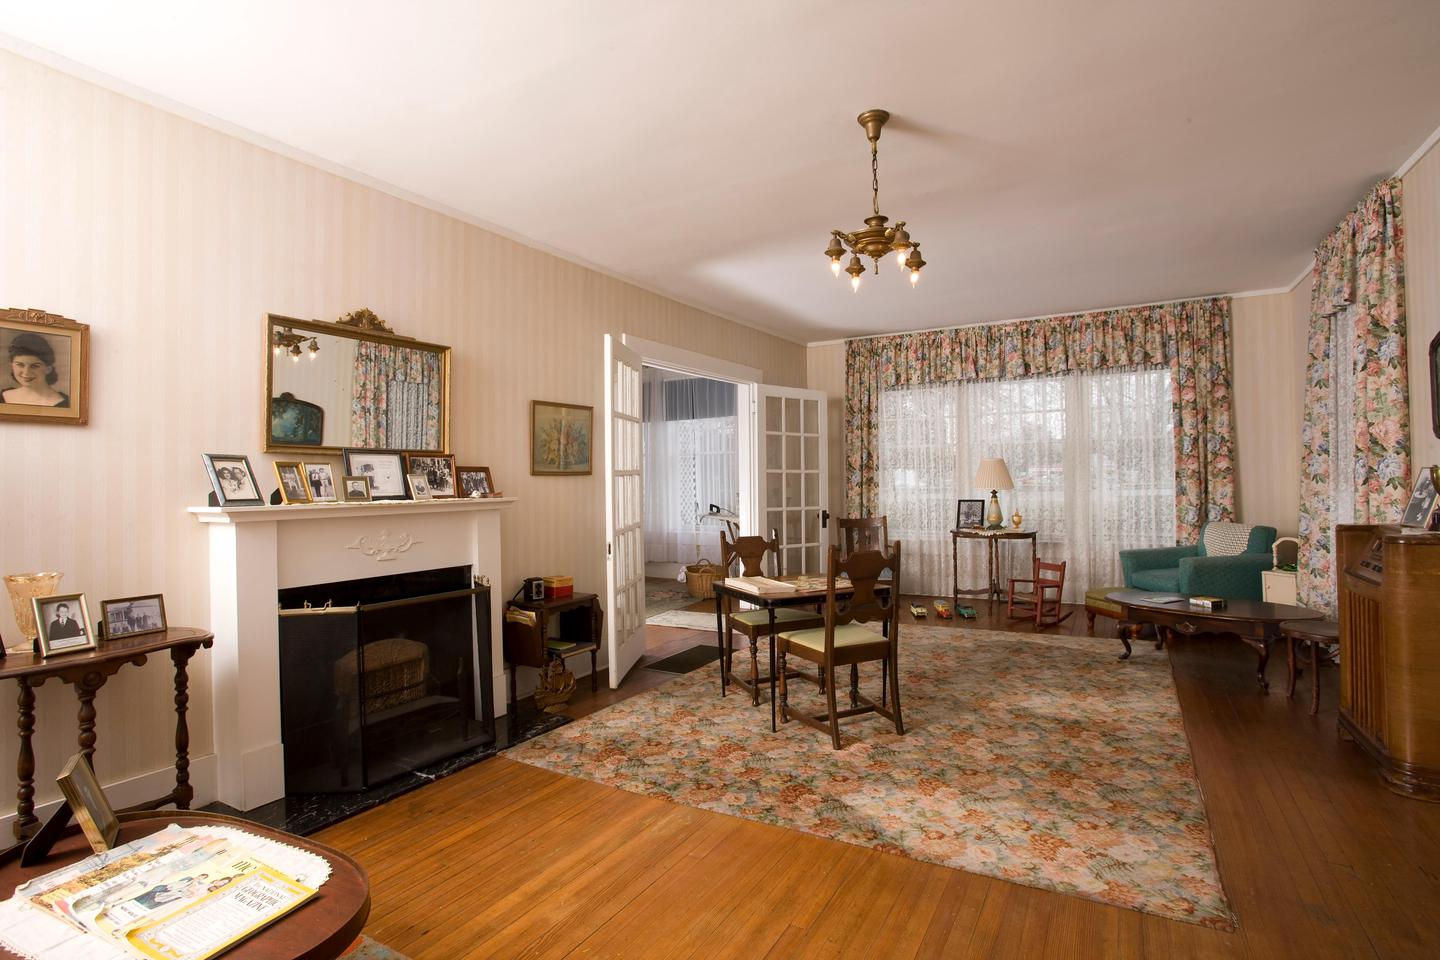 The living room inside the Clinton Birthplace Home